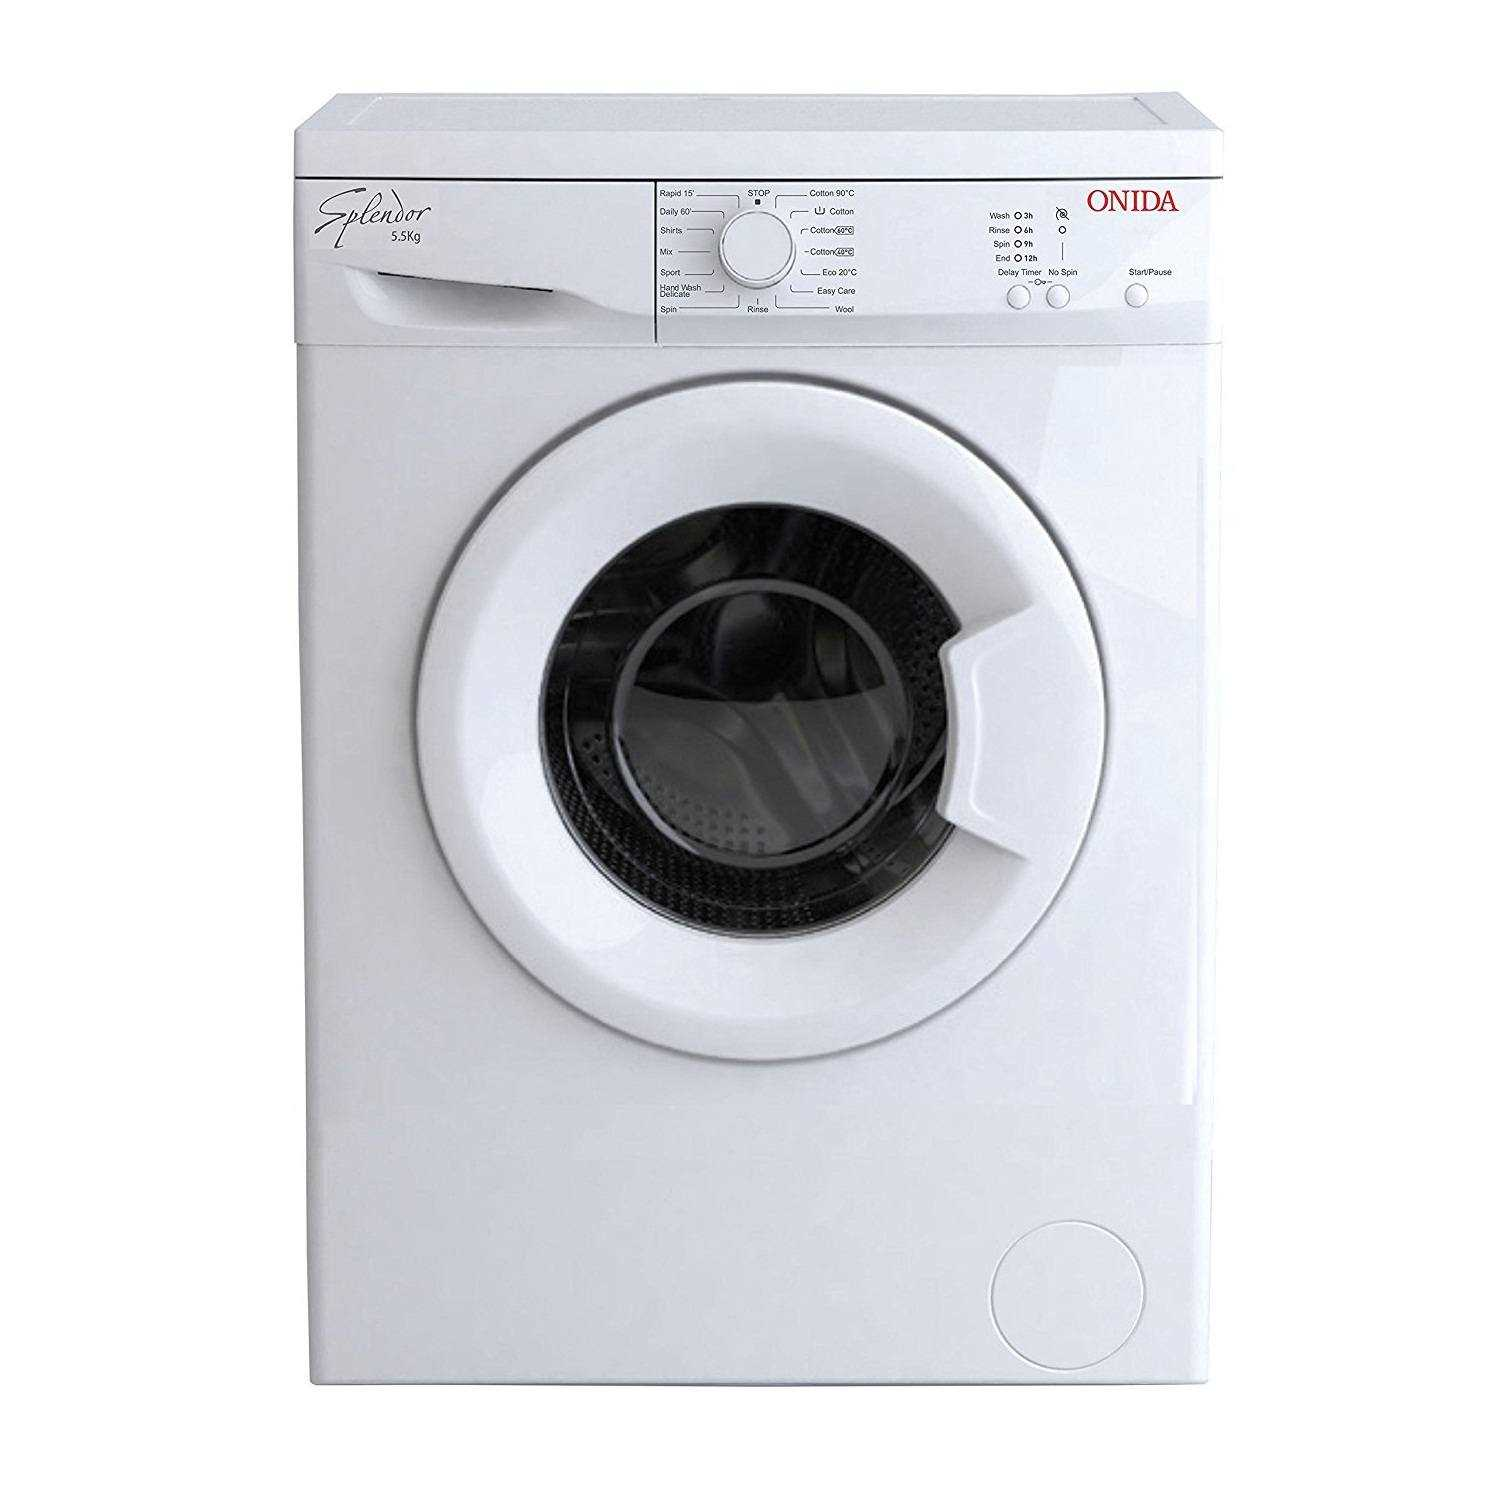 prices of washing machine in india